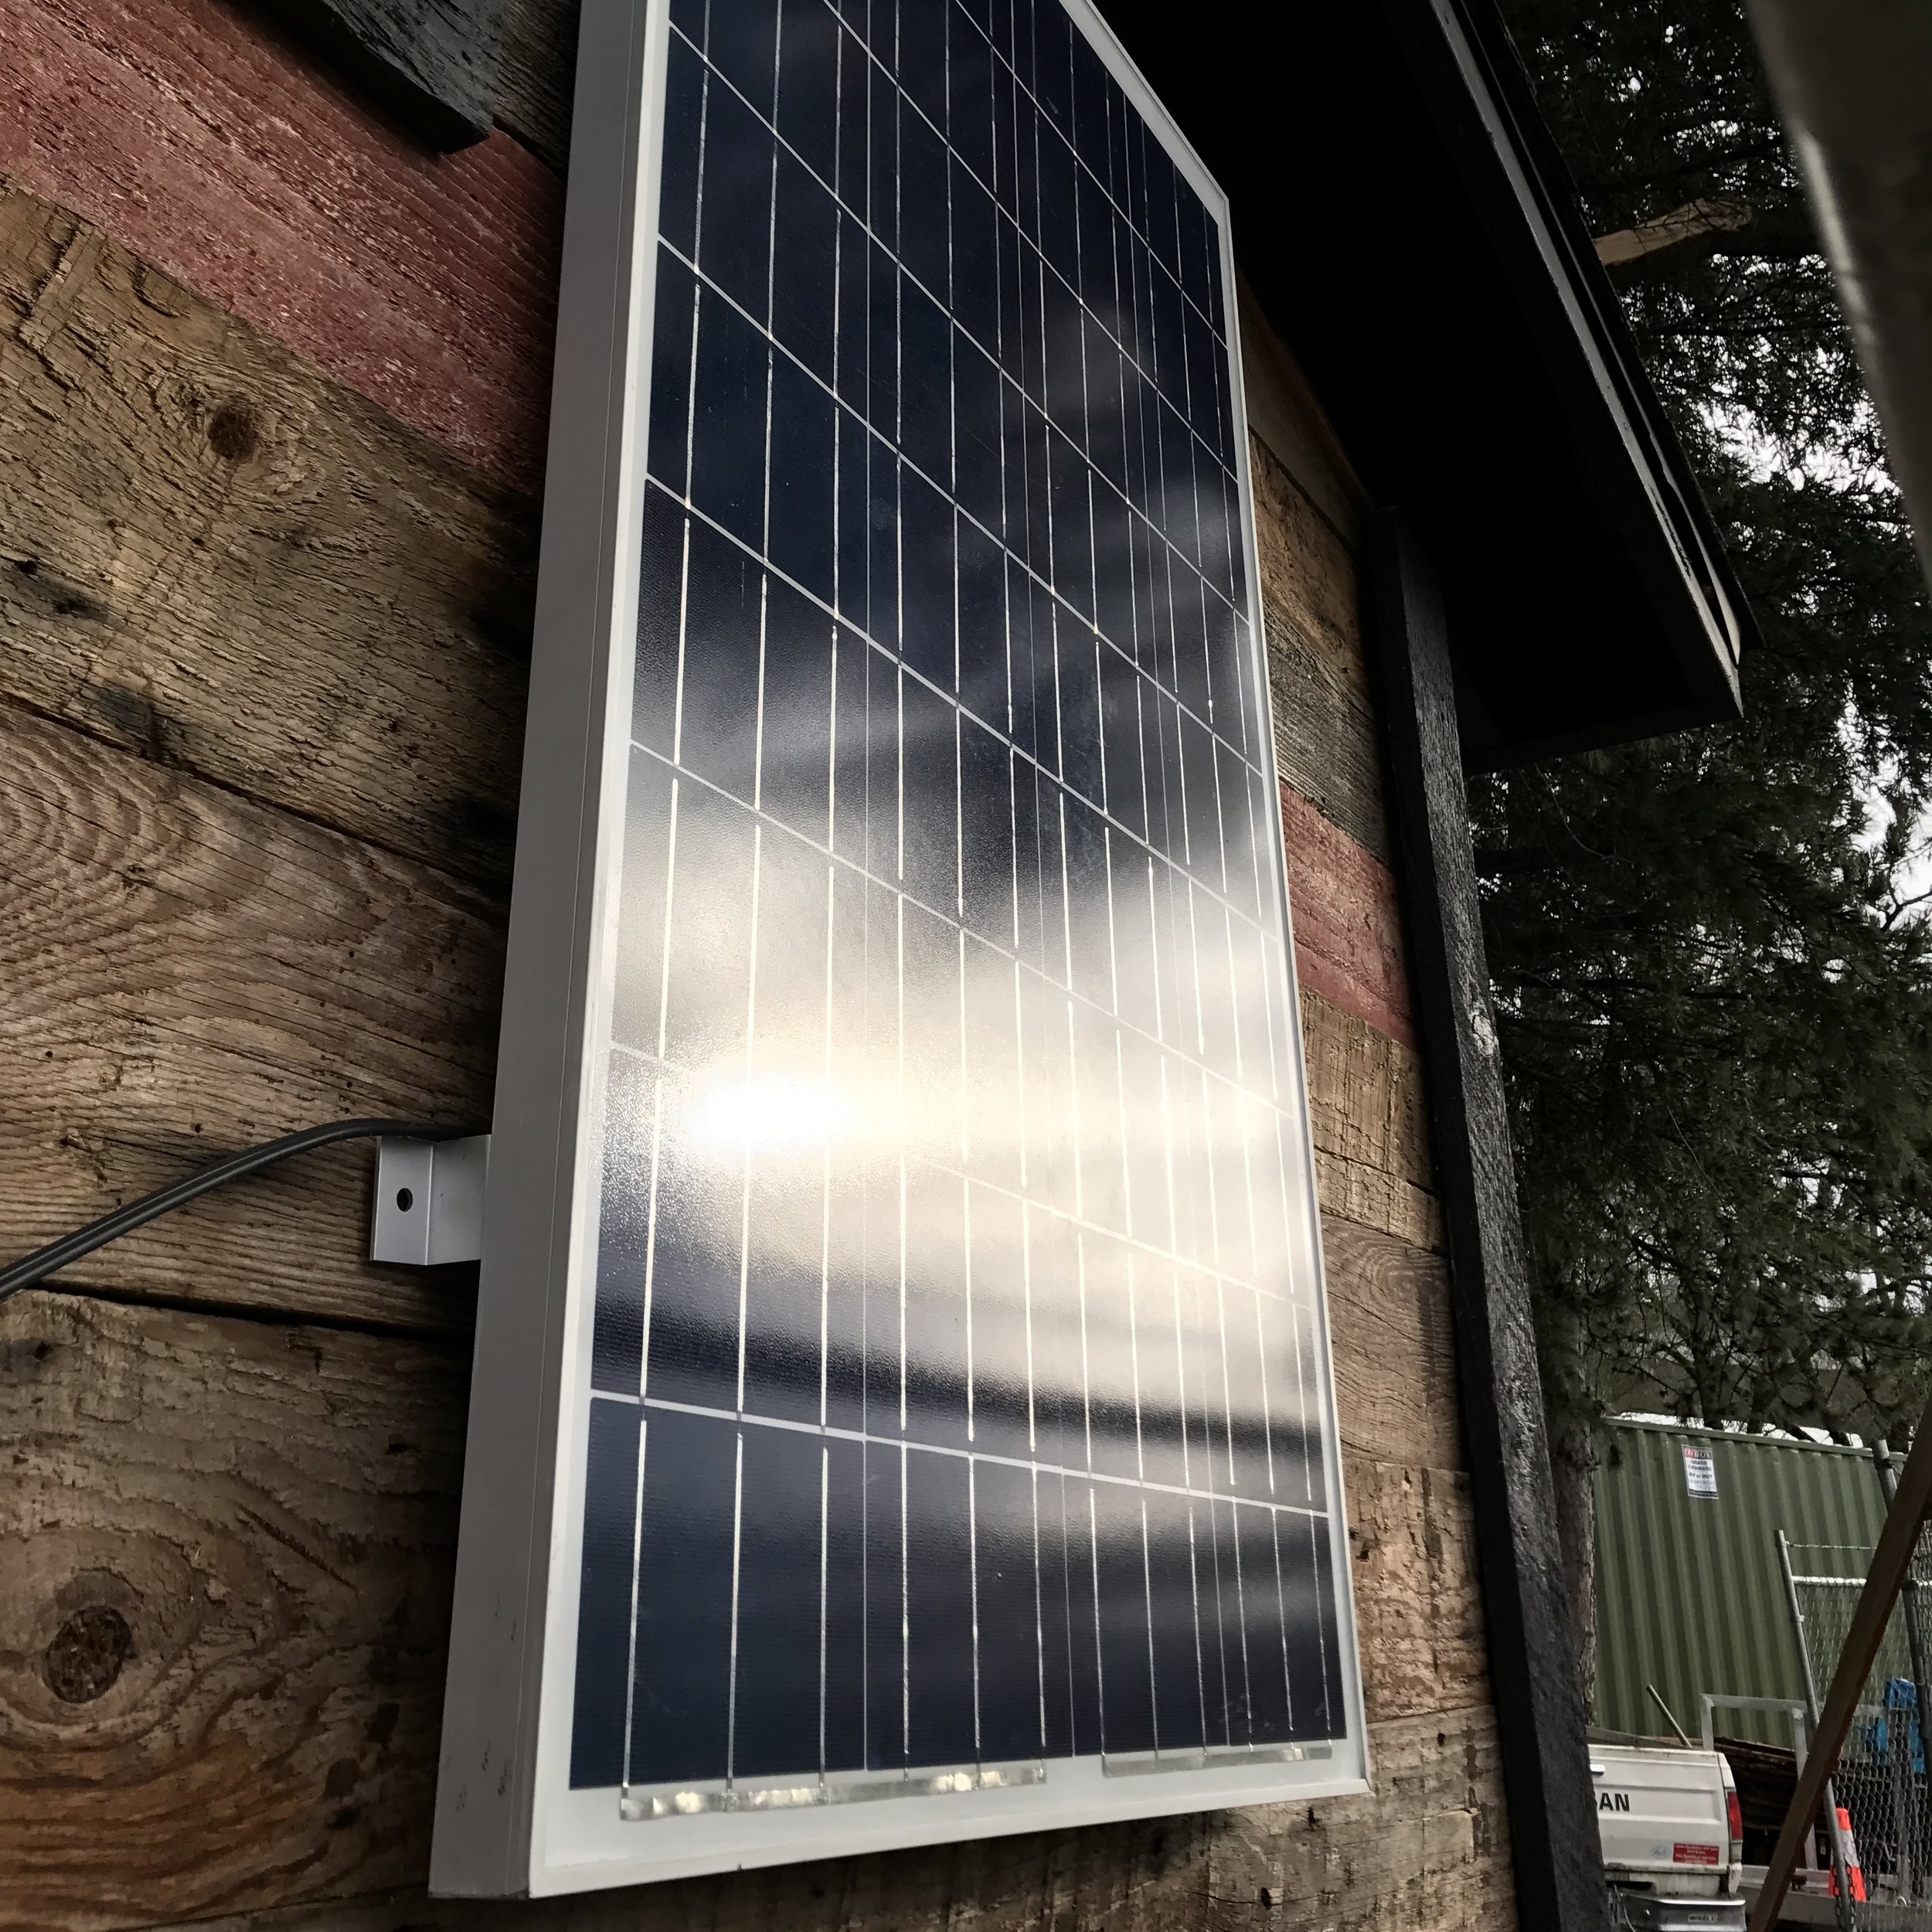 Solar Panel $150 - Our solar panels are 100W.We receive discounted solar panels from Grape Solar, a local company that supports our work.$150 pays for the purchase and installation of one solar panel.